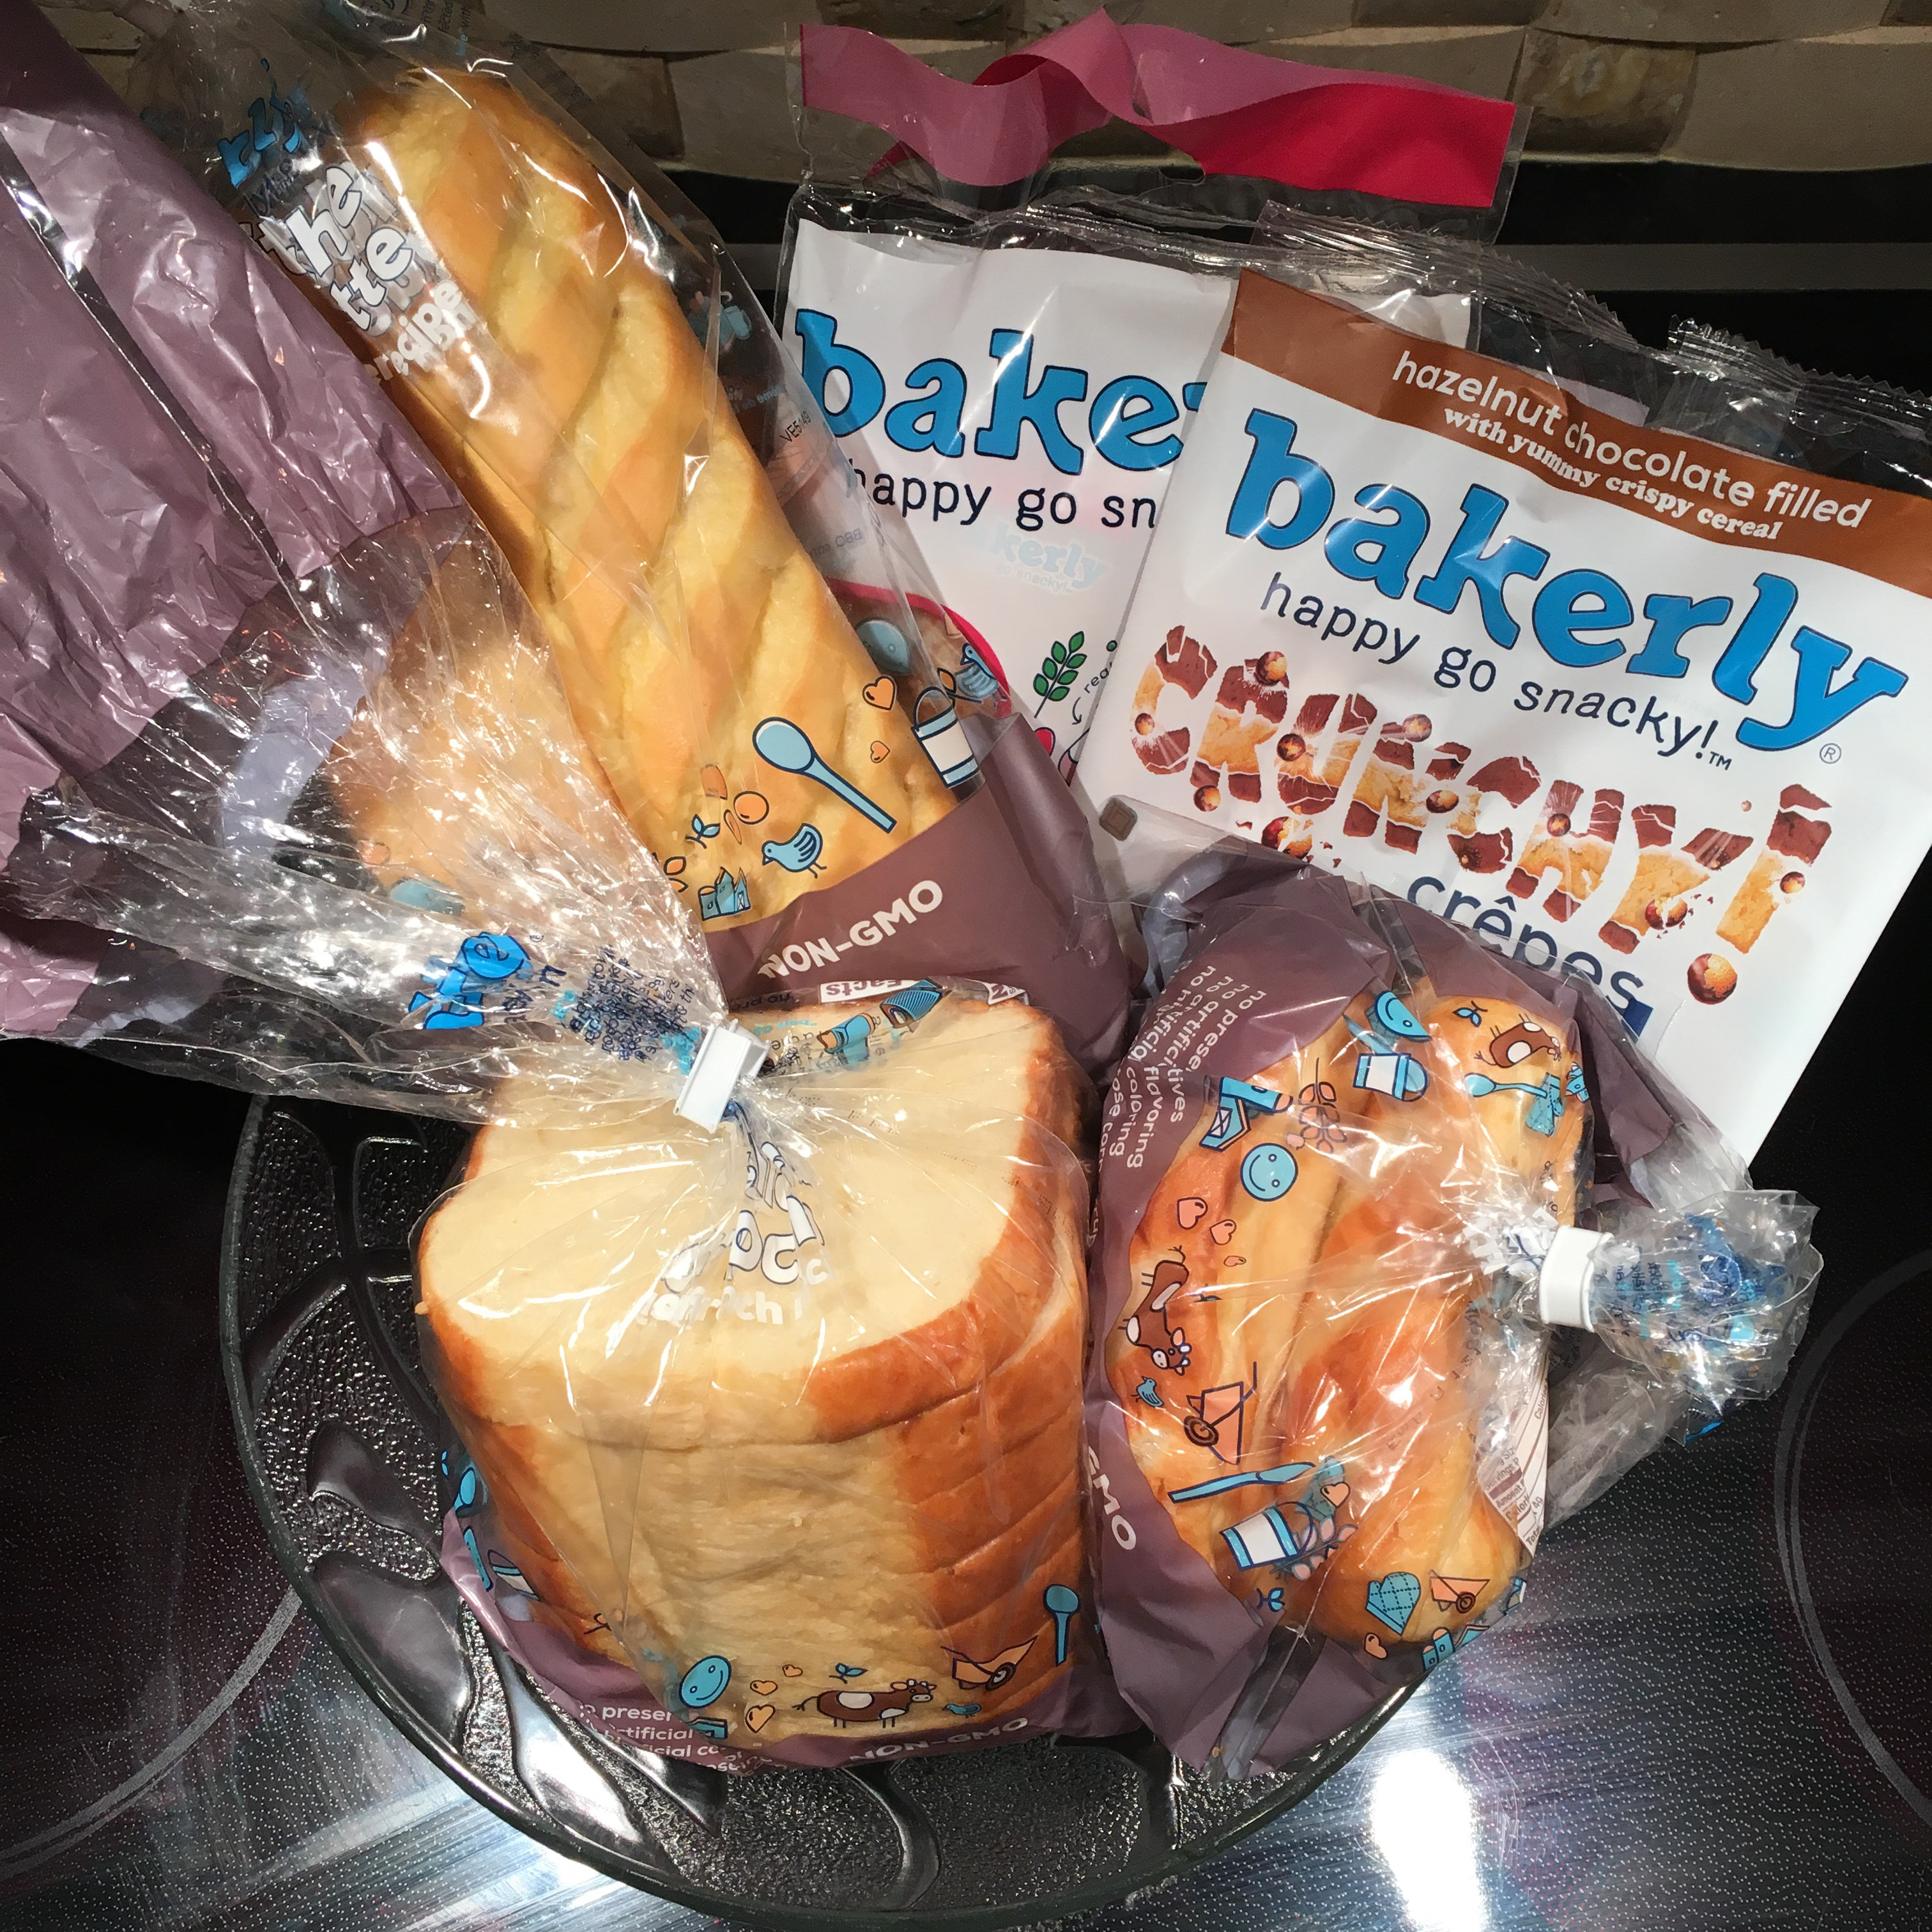 The french bread everyone should be buying in South Florida - Bakerly, french bread from real ingredients!